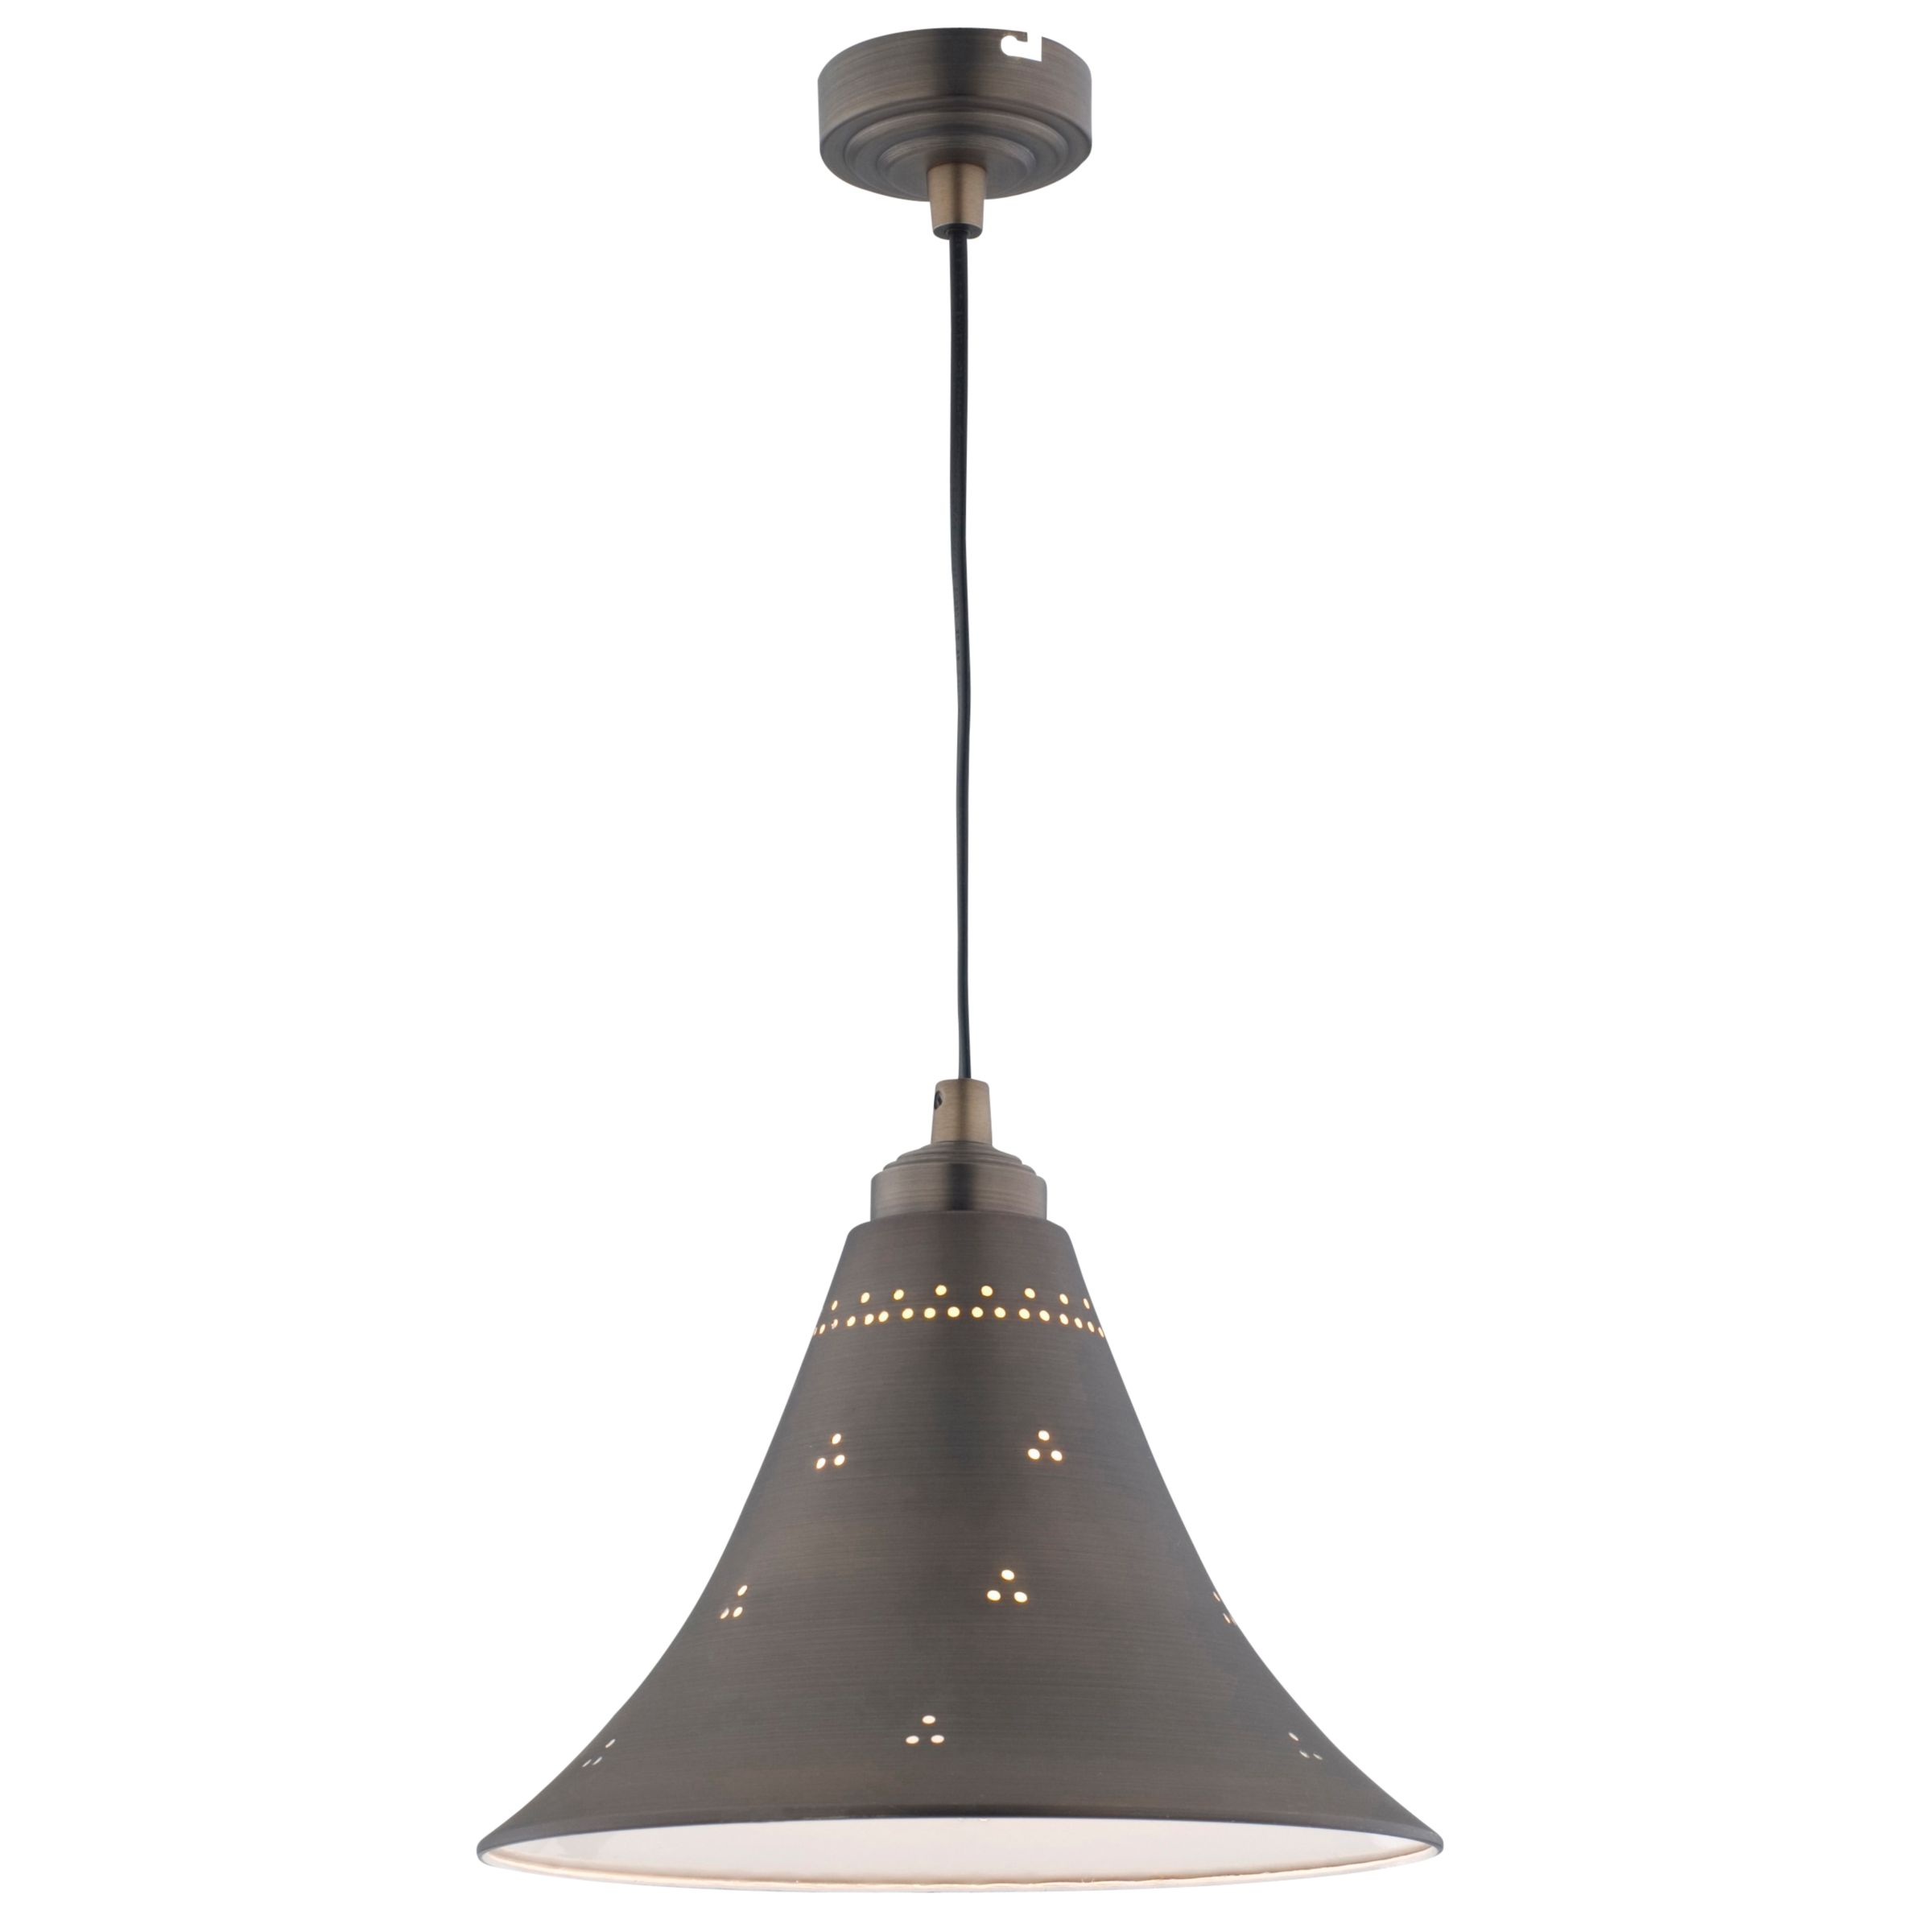 John Lewis Ceiling Lights Antique Brass : John lewis delar ceiling light review compare prices